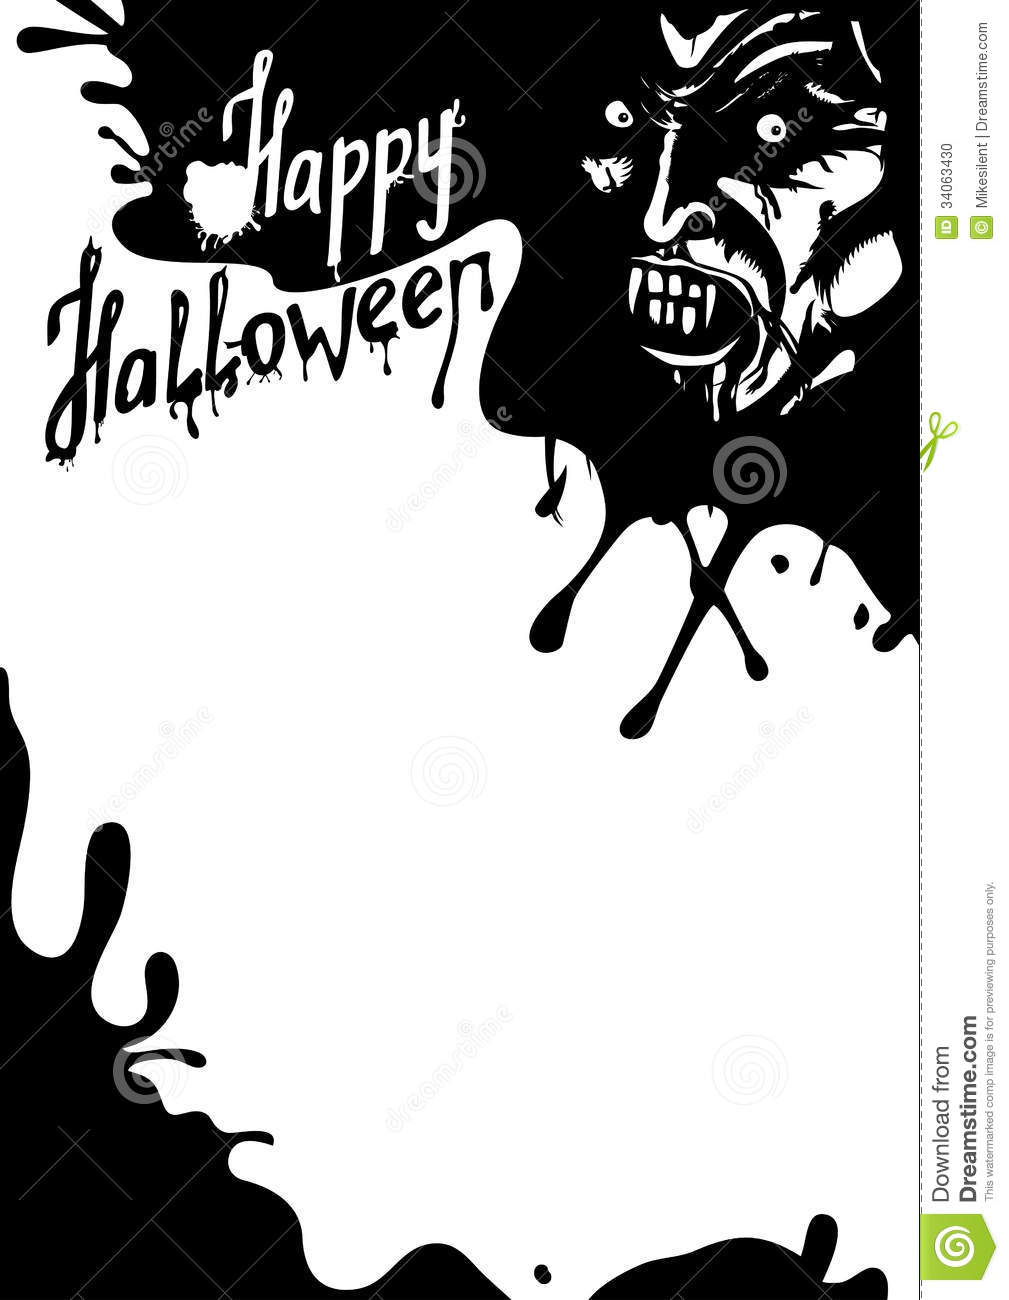 Halloween Flyer Black and White